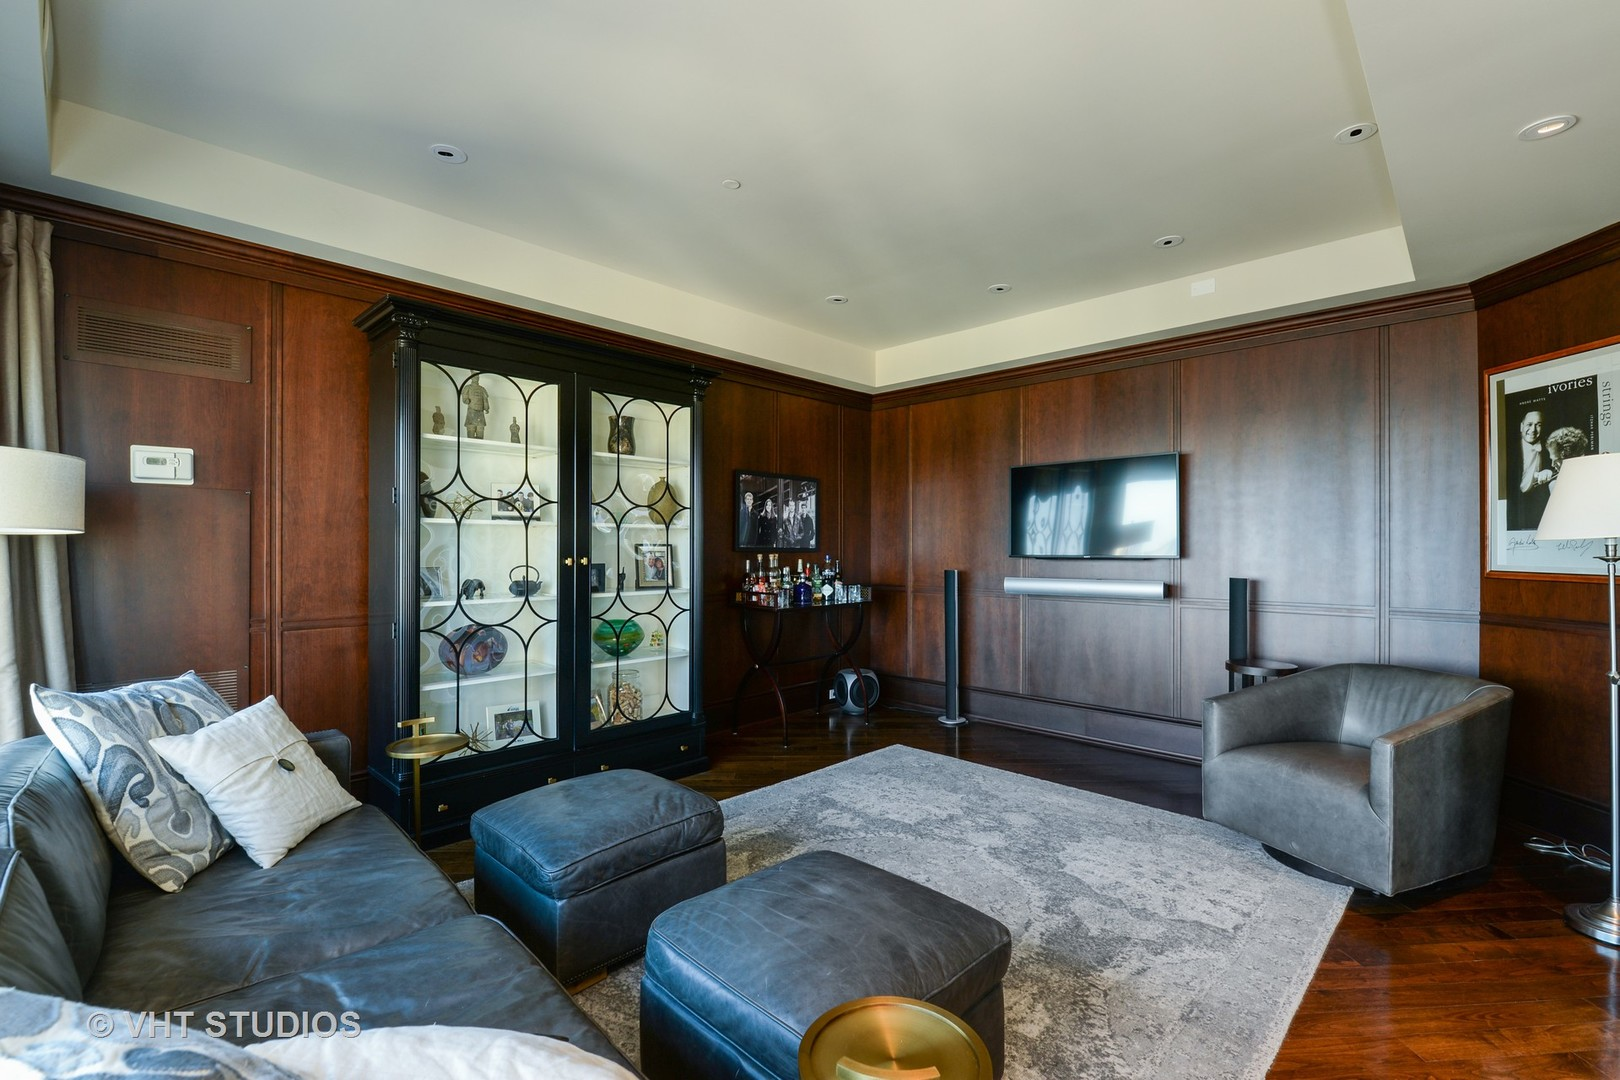 100 East Huron 3904, Chicago, Illinois, 60611